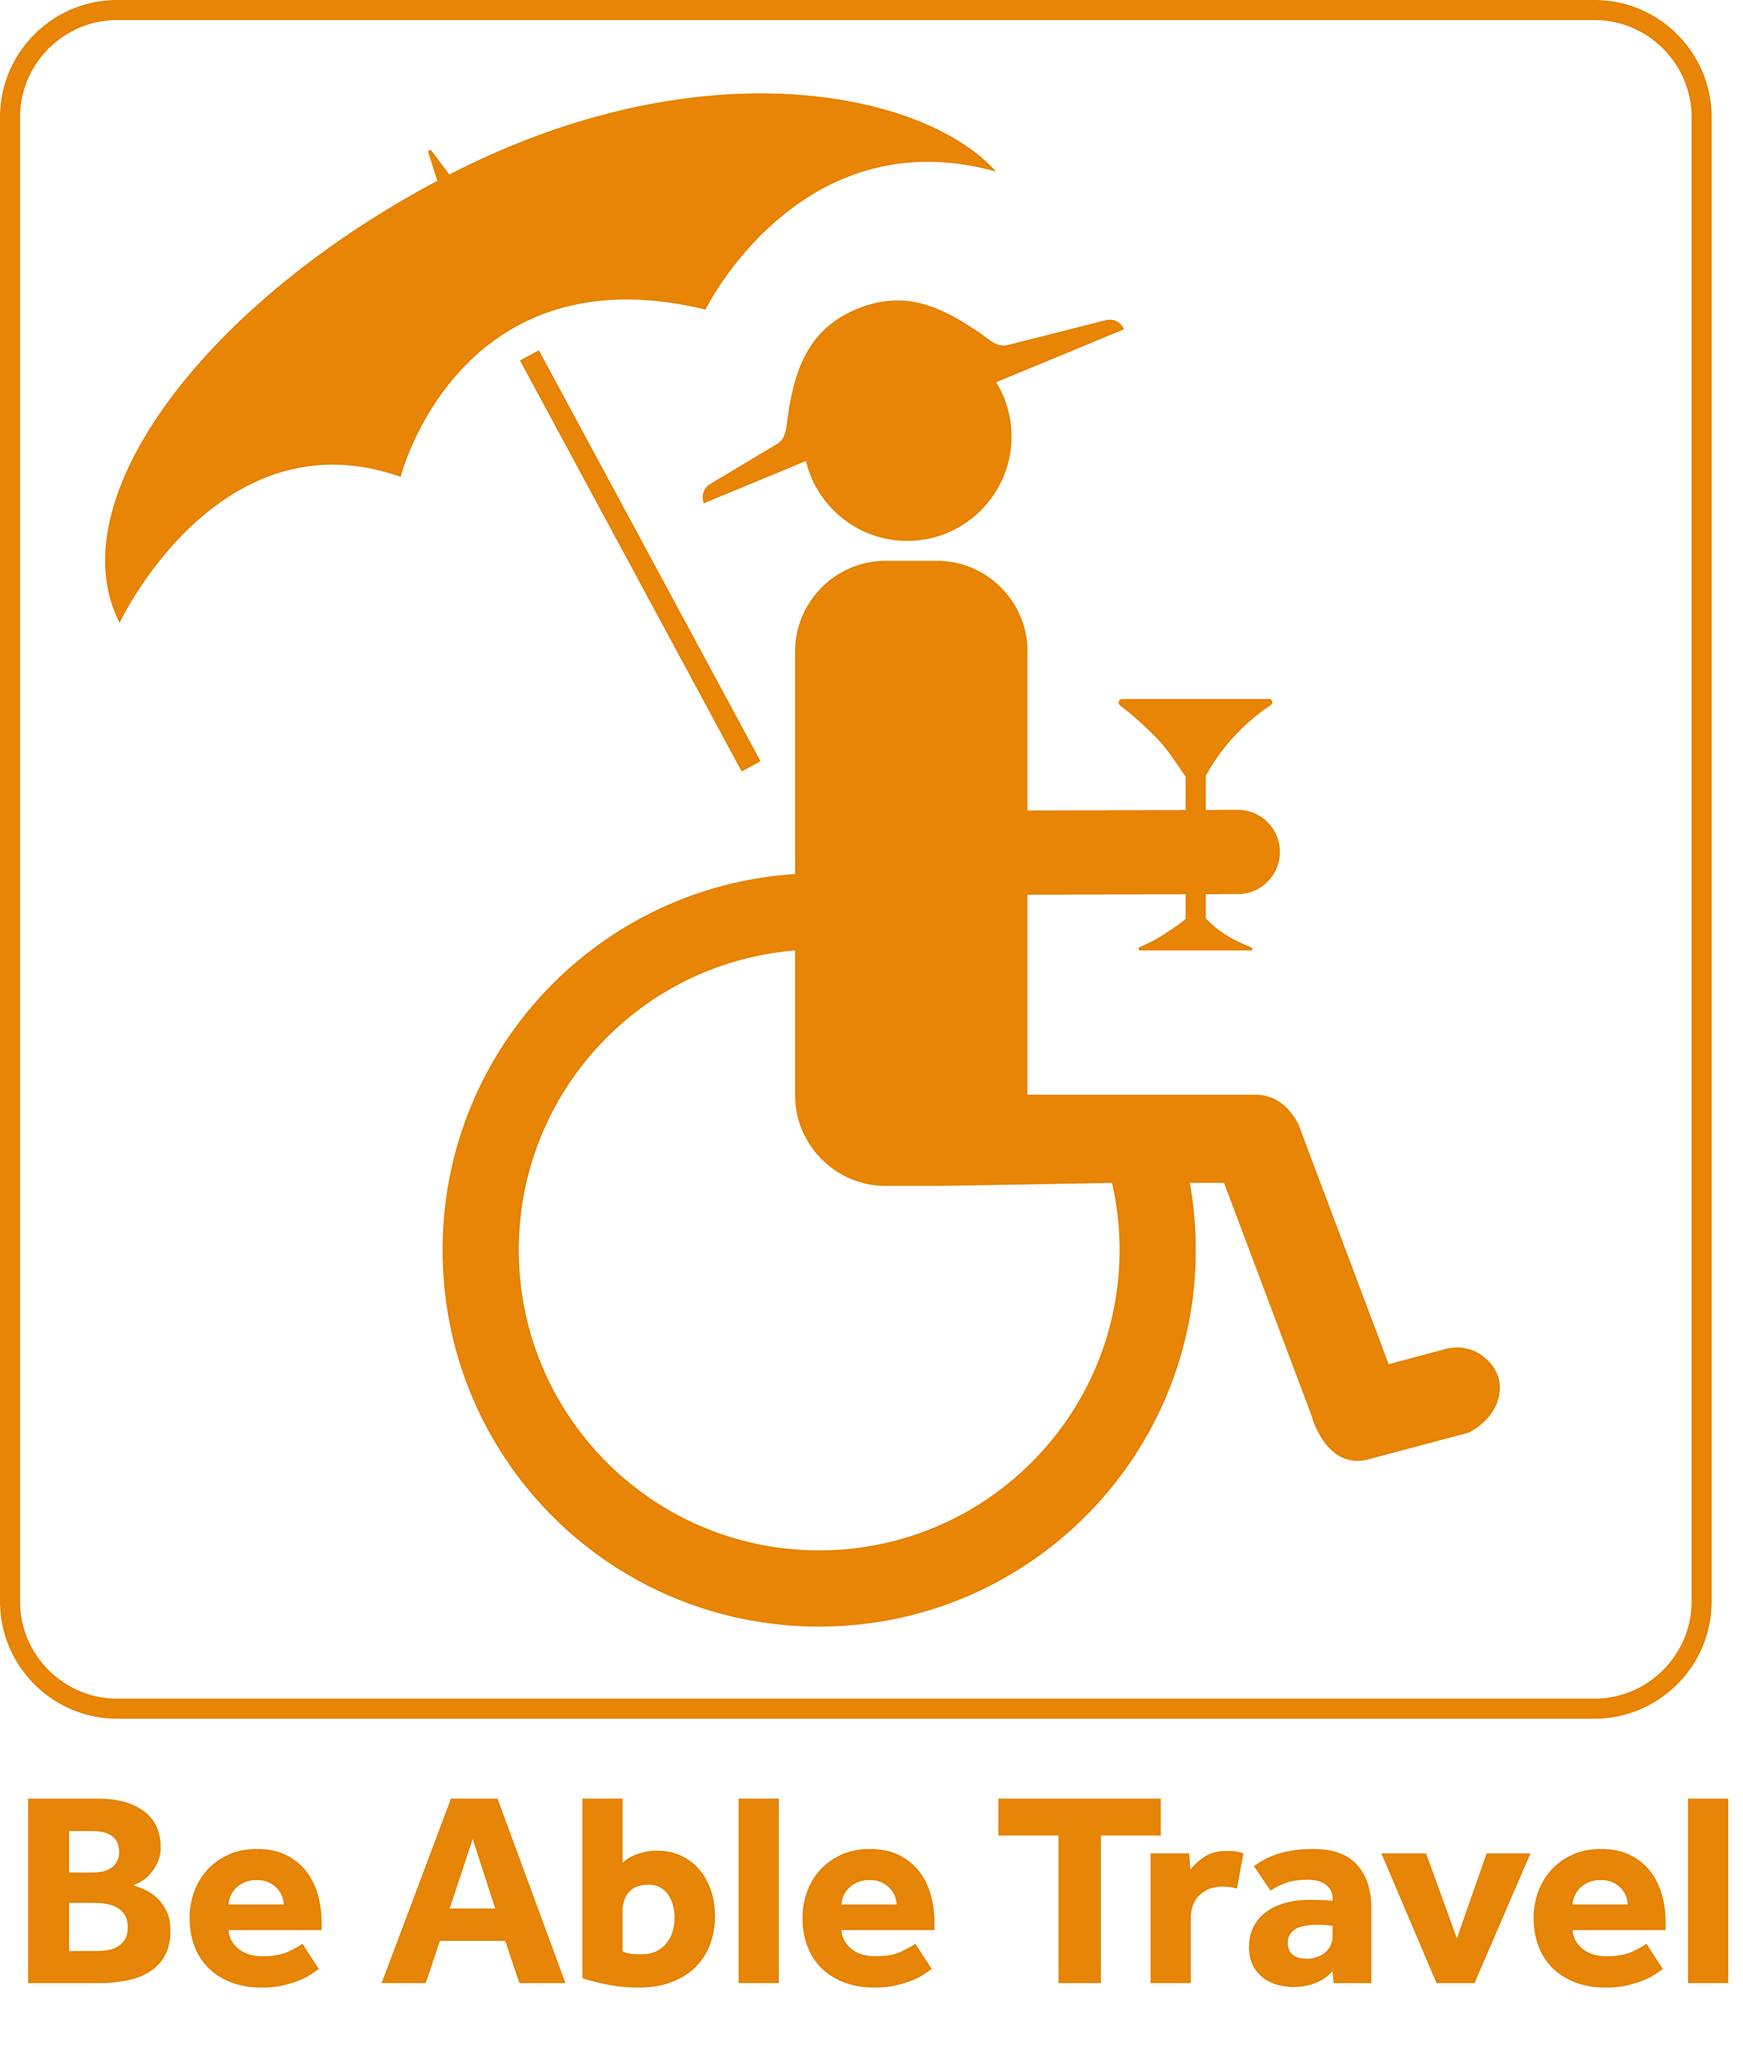 Be Able Travel logo